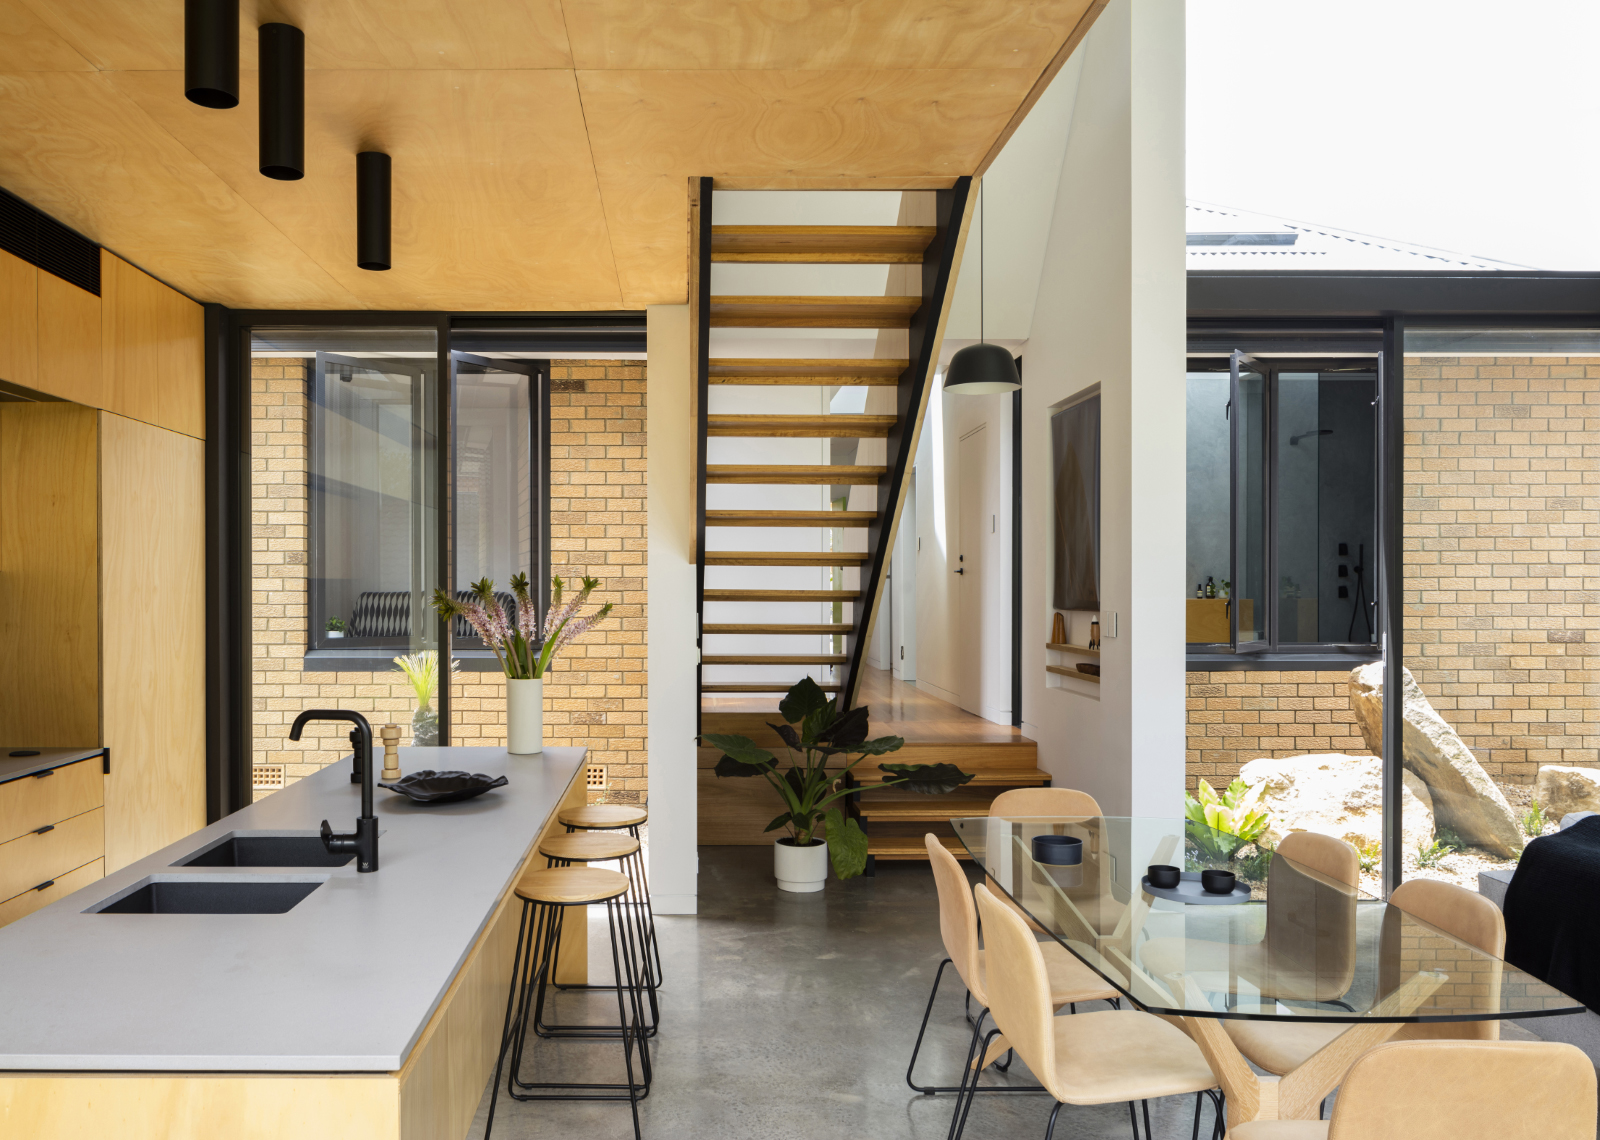 Gallery Of Binary House By Christopher Polly Architect Local Australian Design And Interiors Woolooware, Nsw Image 10